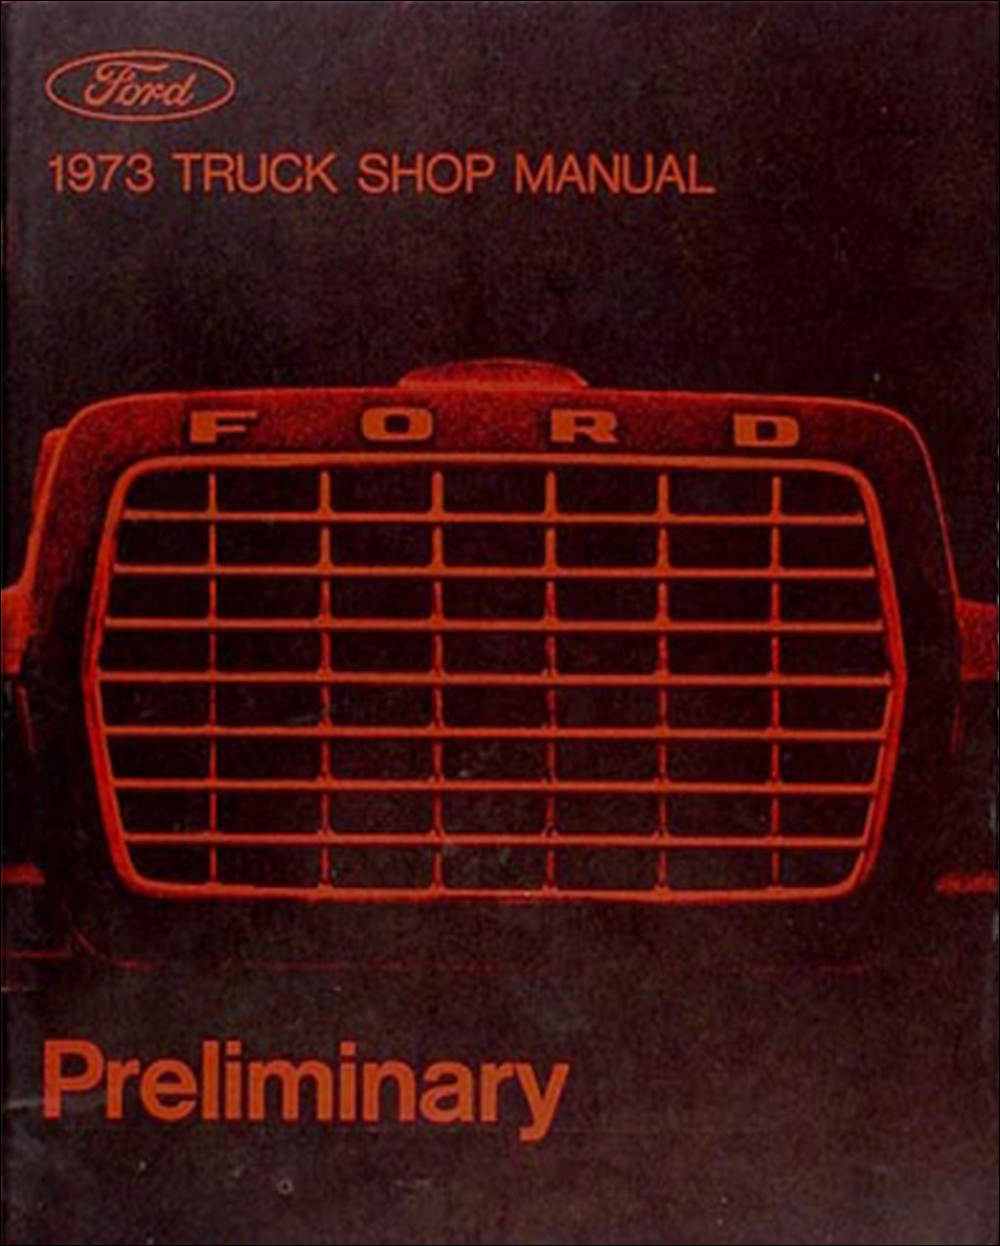 1973 Ford Truck Preliminary Shop Manual Original